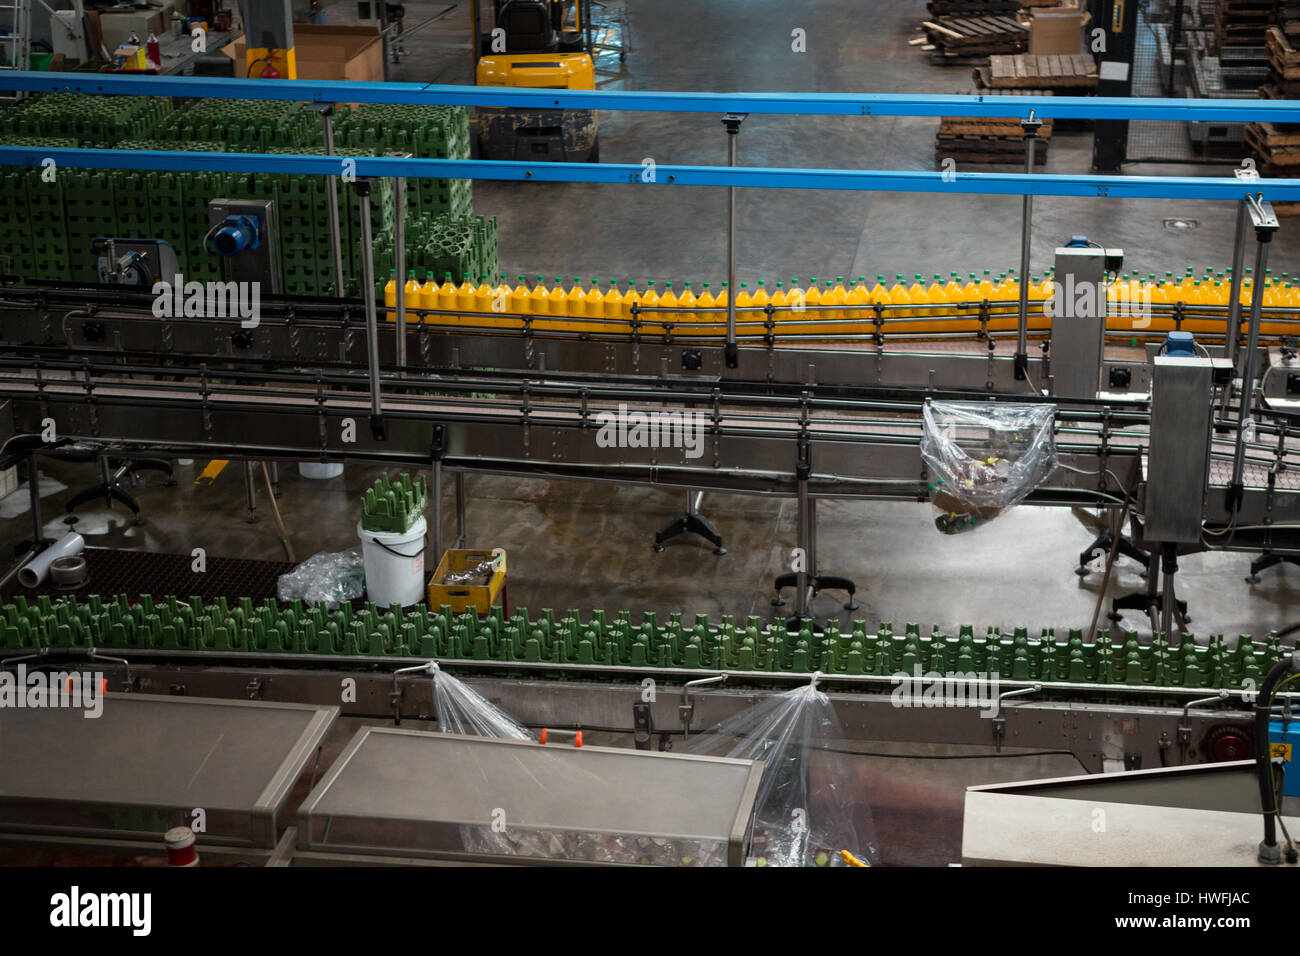 High angle view of bottles on production lines in juice factory Stock Photo